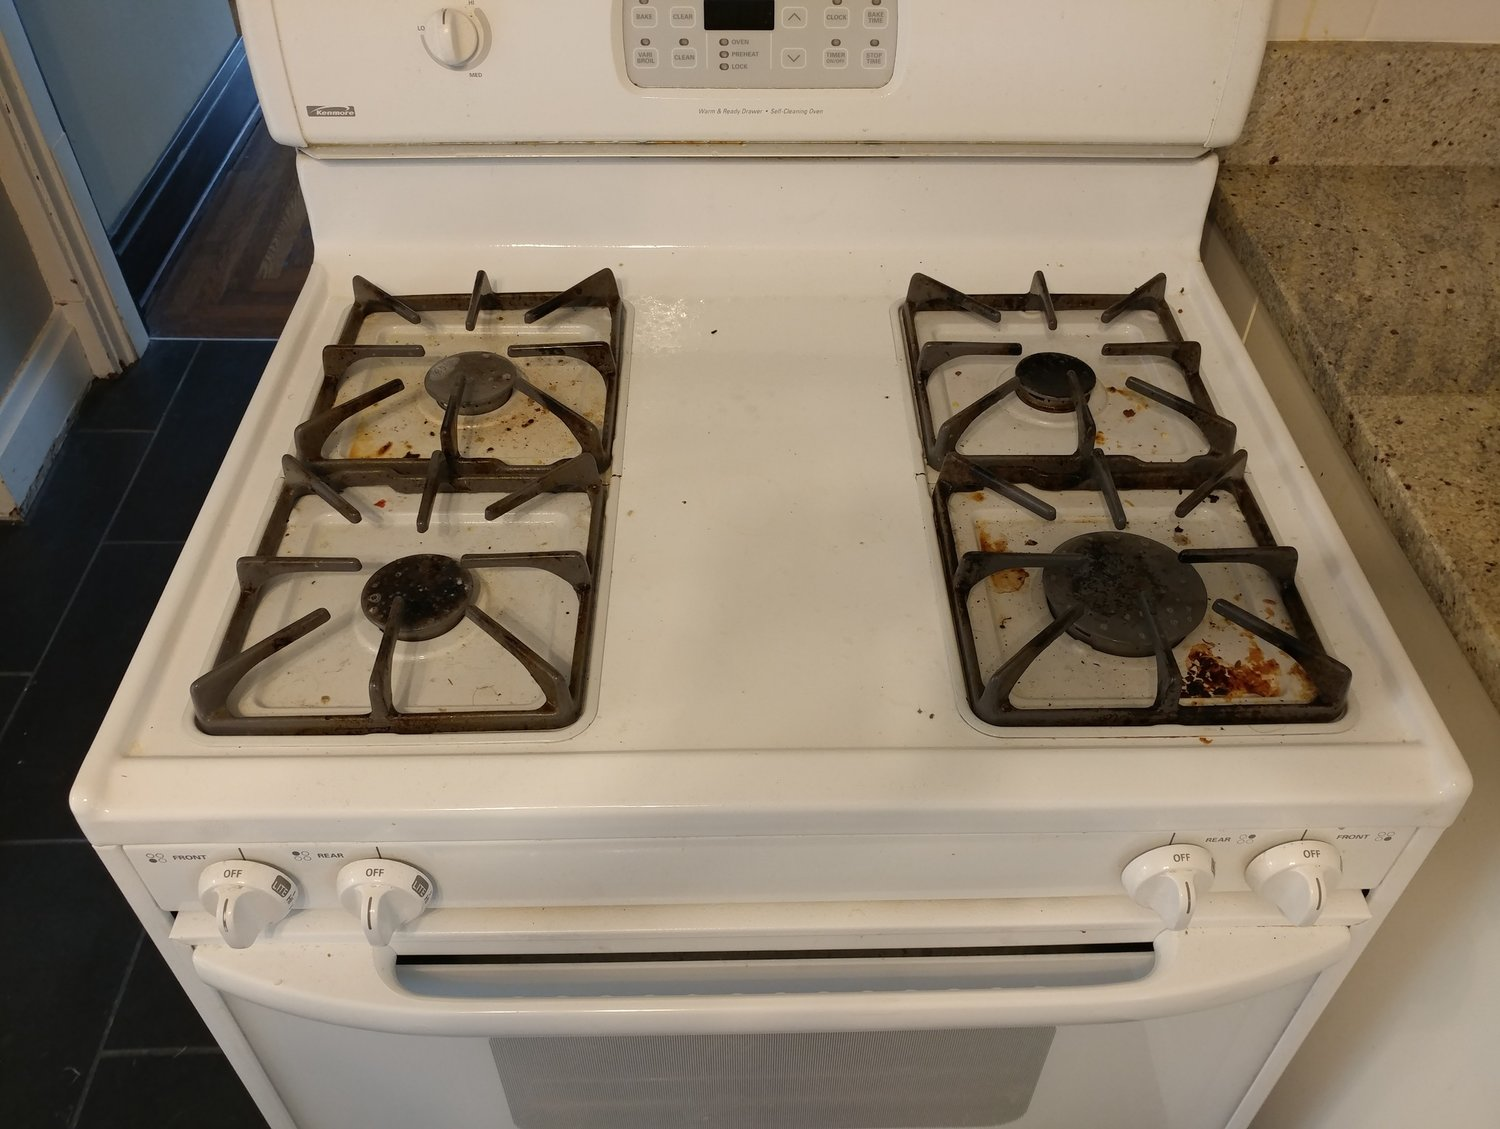 Stovetop - Before